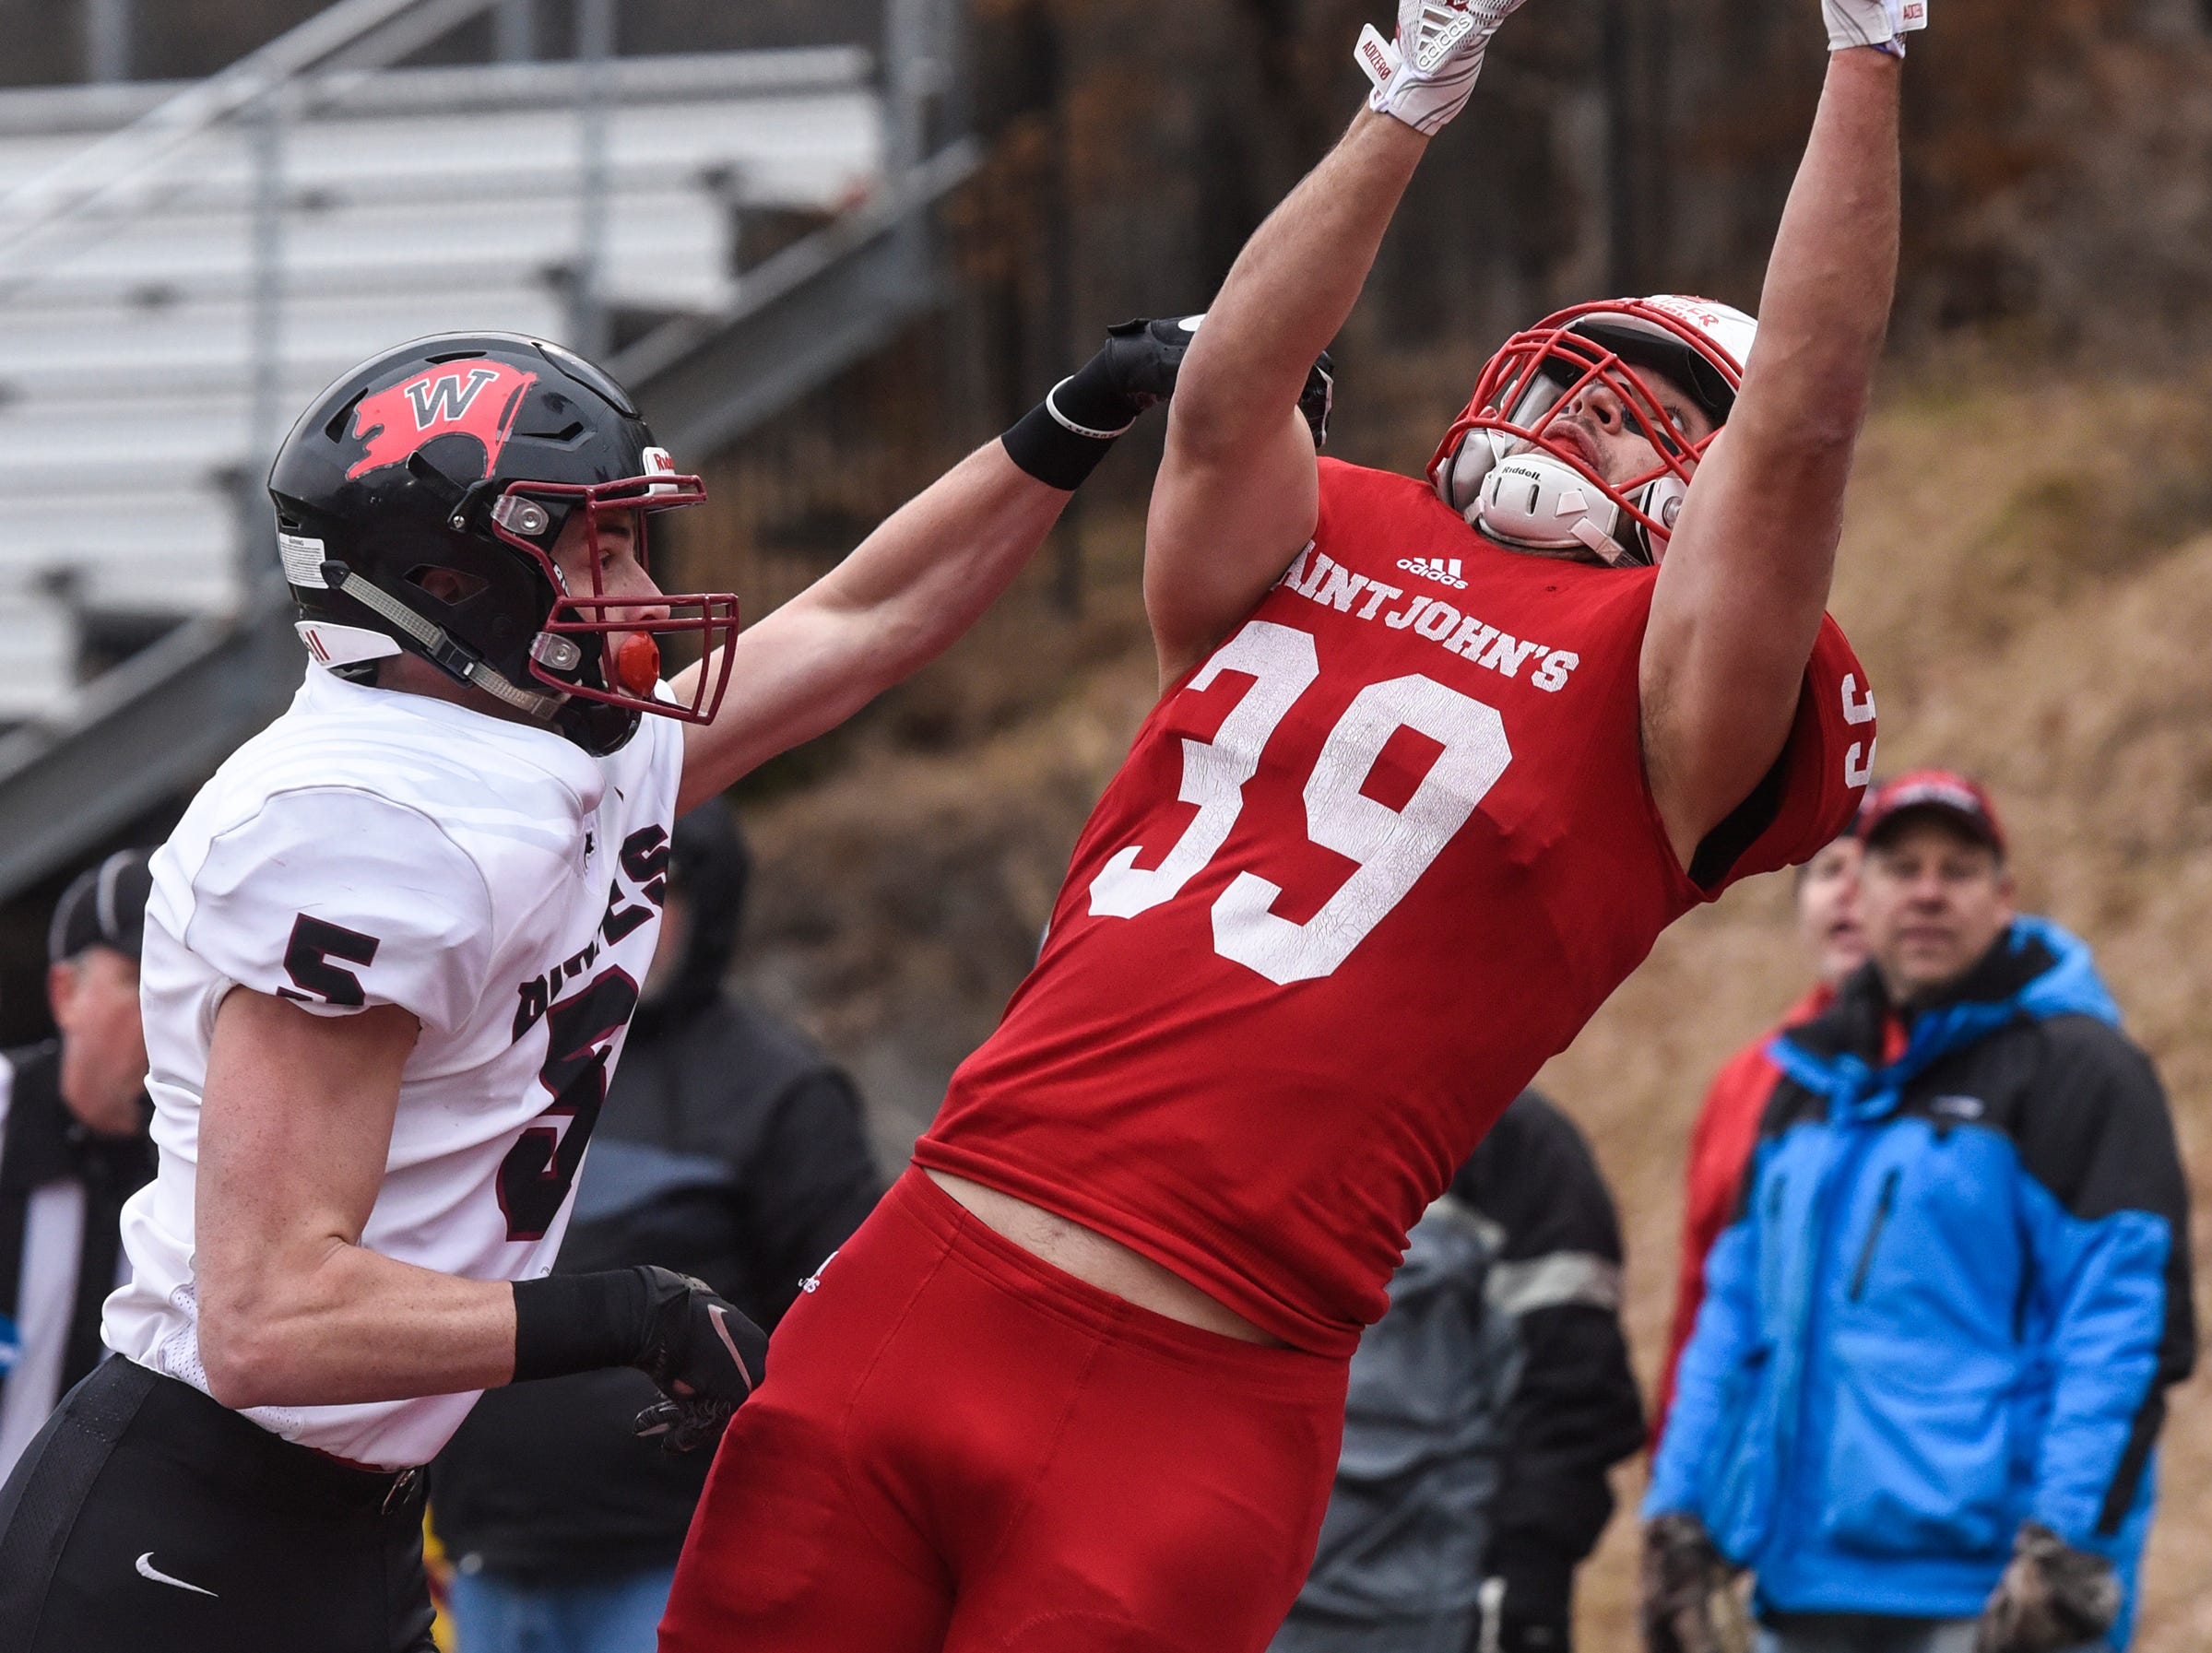 Tommy Auger of St. John's stretches to make a catch during the Saturday, Nov. 24, game against Whitworth at Clemens Stadium in Collegeville.